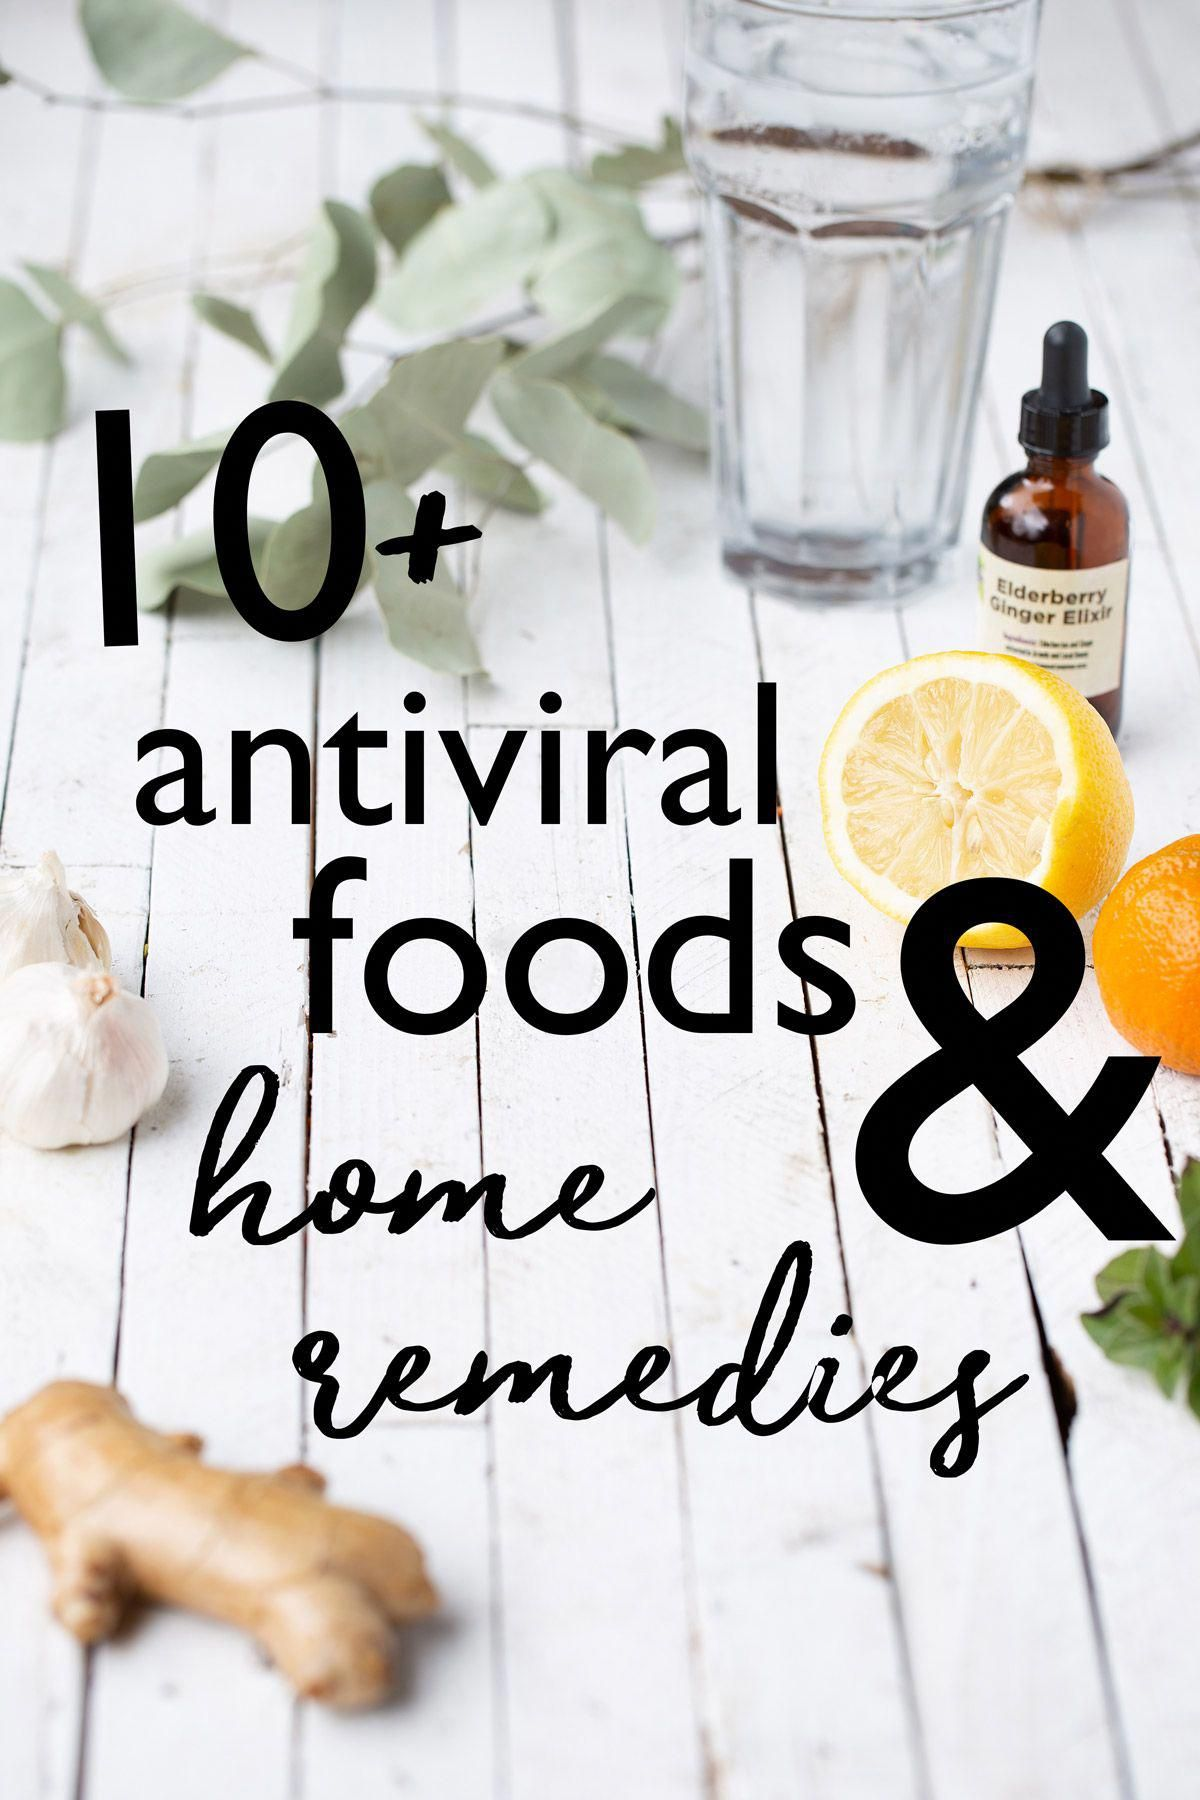 Antiviral foods and home remedies for lung health one